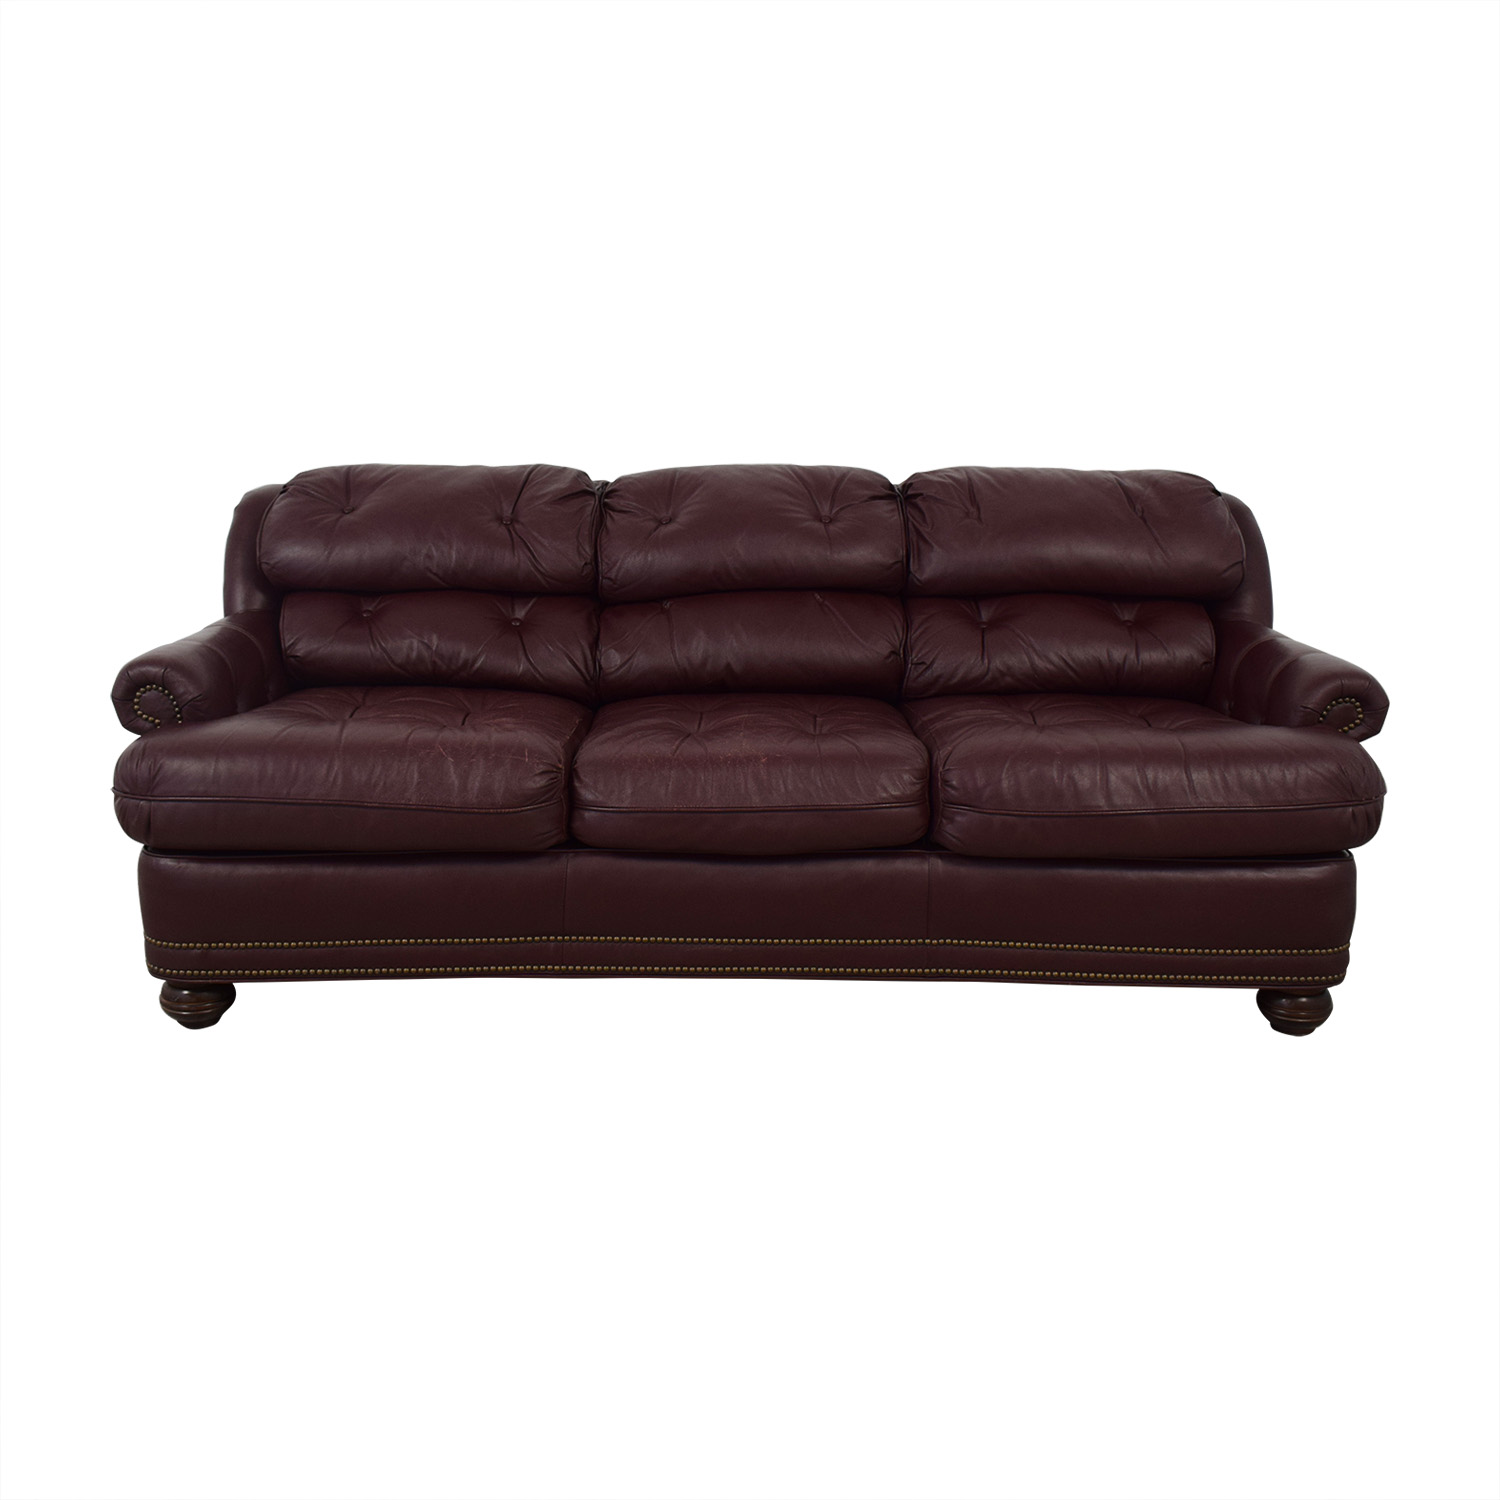 Distinctions Furniture Red Nailhead Sofa sale